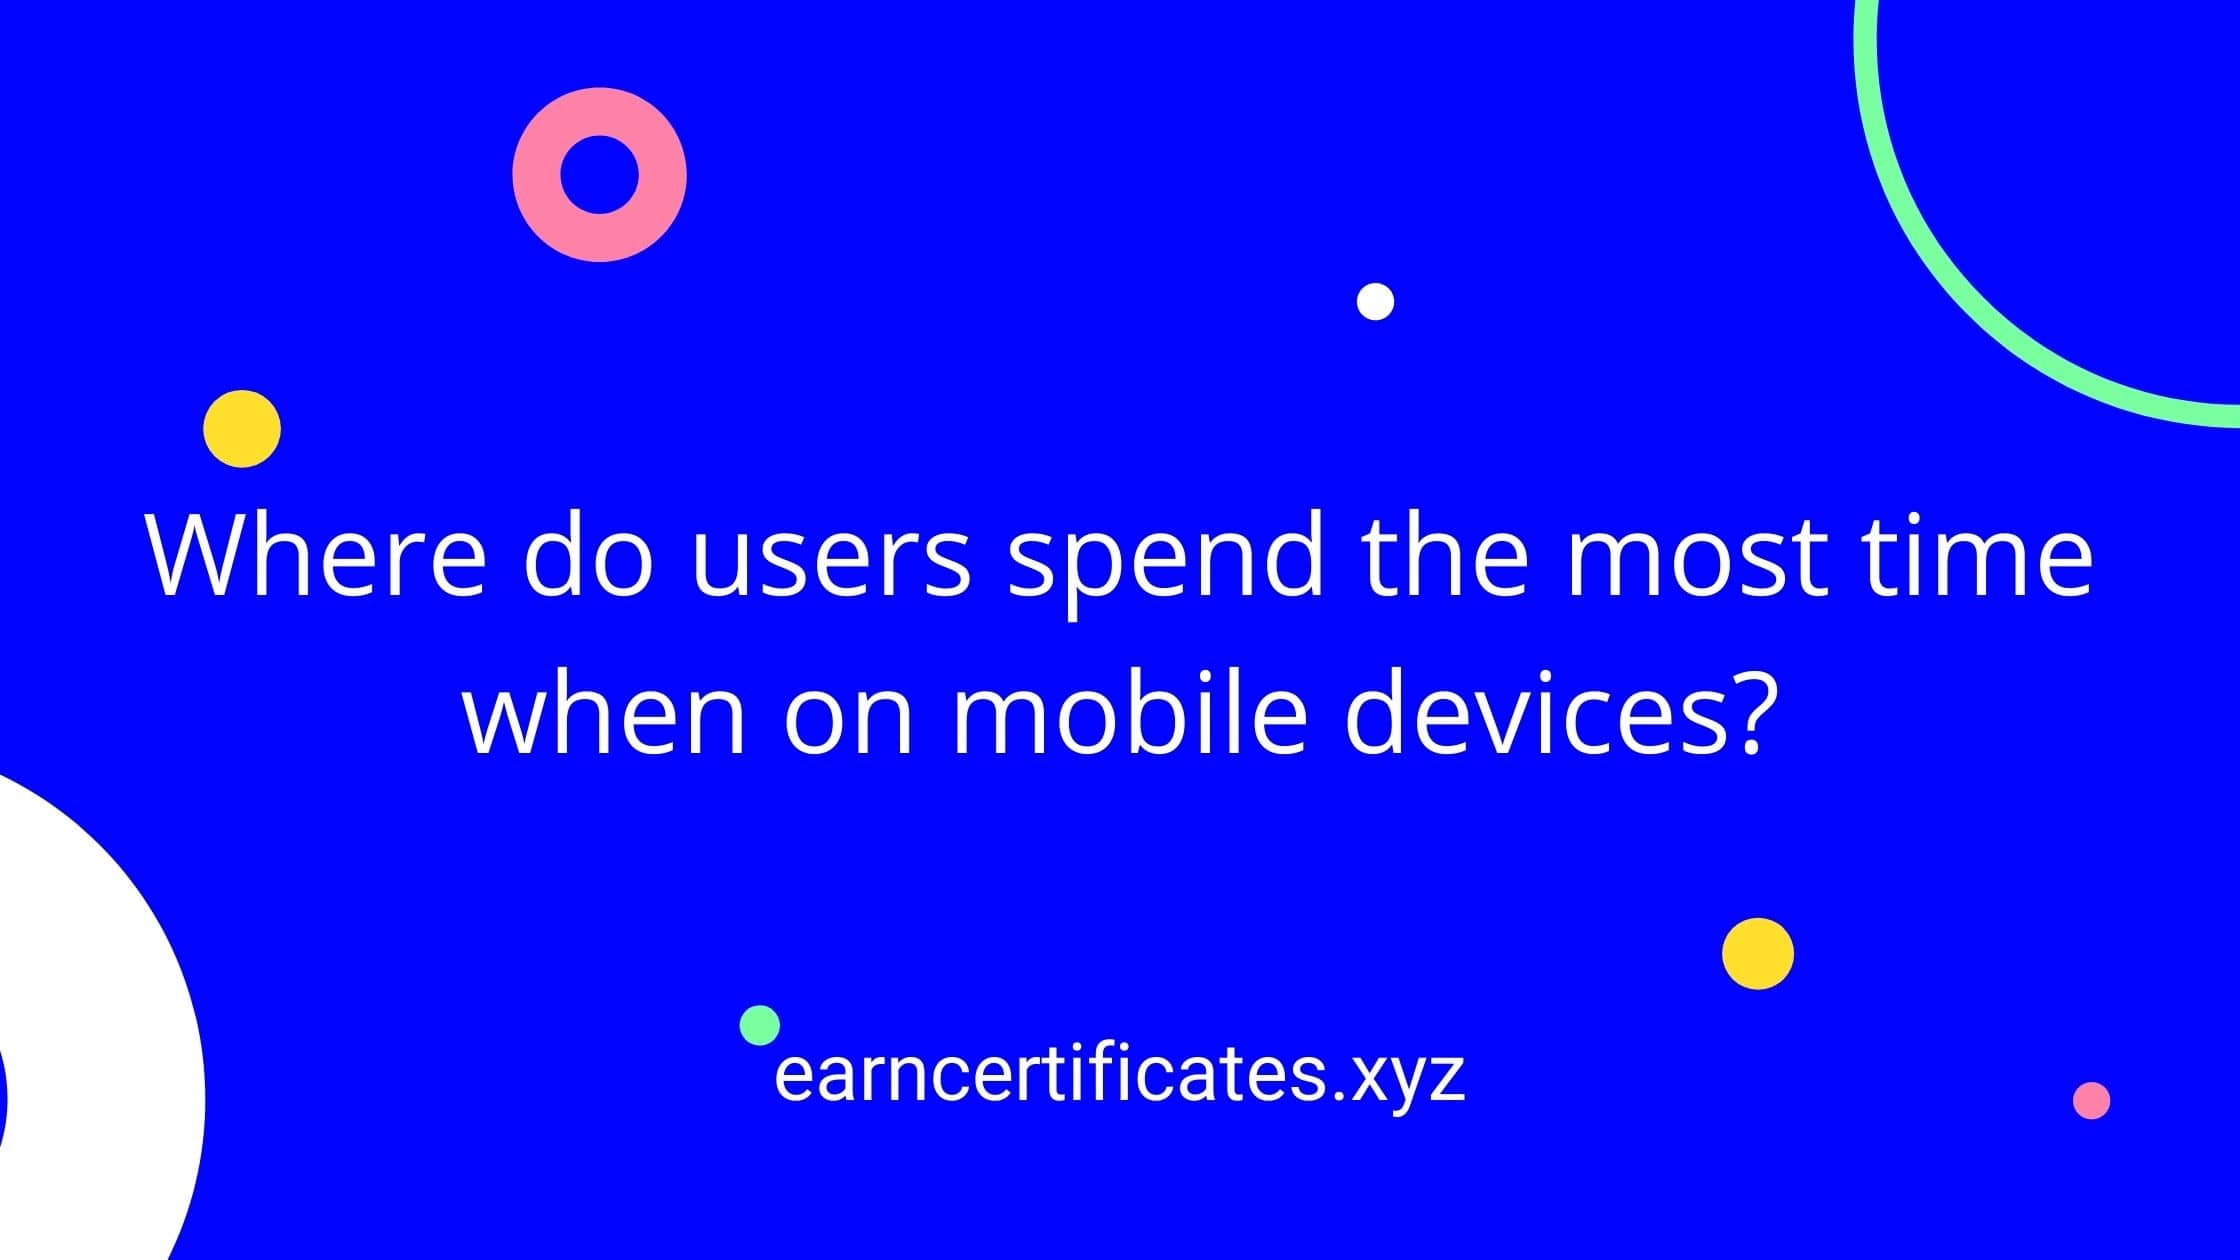 Where do users spend the most time when on mobile devices?